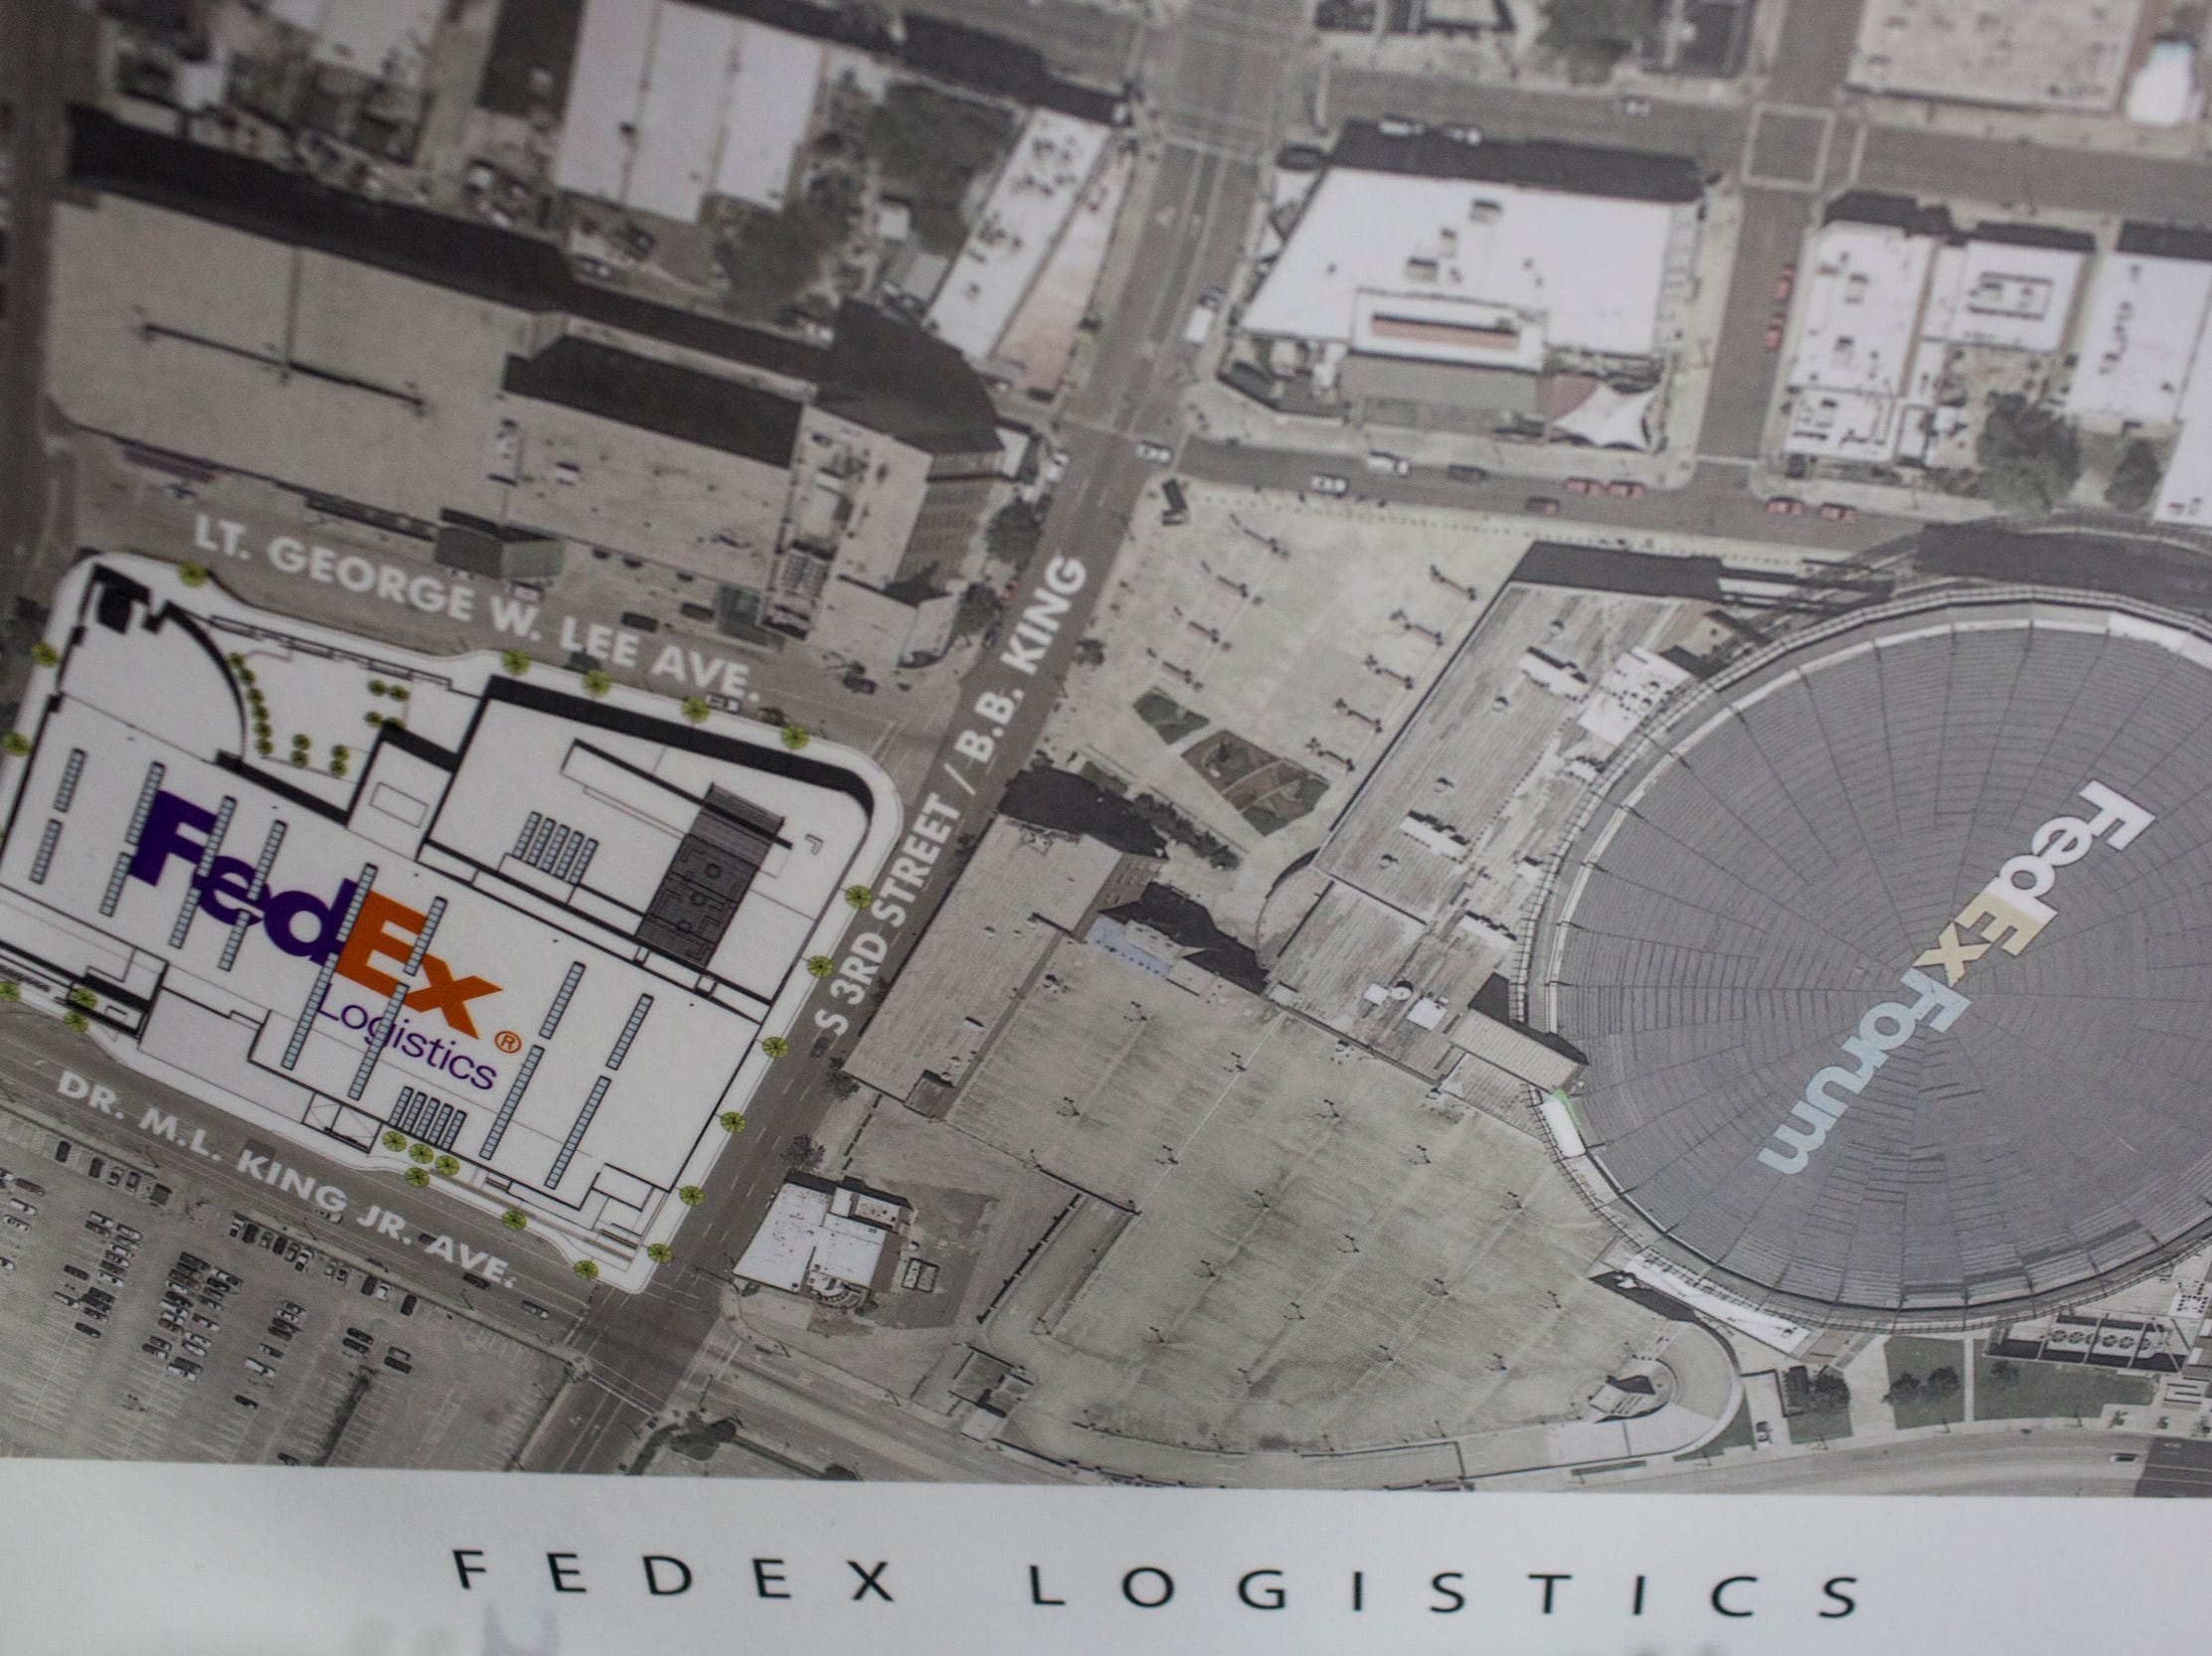 February 12, 2019 - FedEx Logistics is relocating to the Gibson Guitar Building, Gov. Bill Lee and local officials announced Tuesday at the former guitar factory off Beale Street. This is Lee's first economic development announcement since taking office.